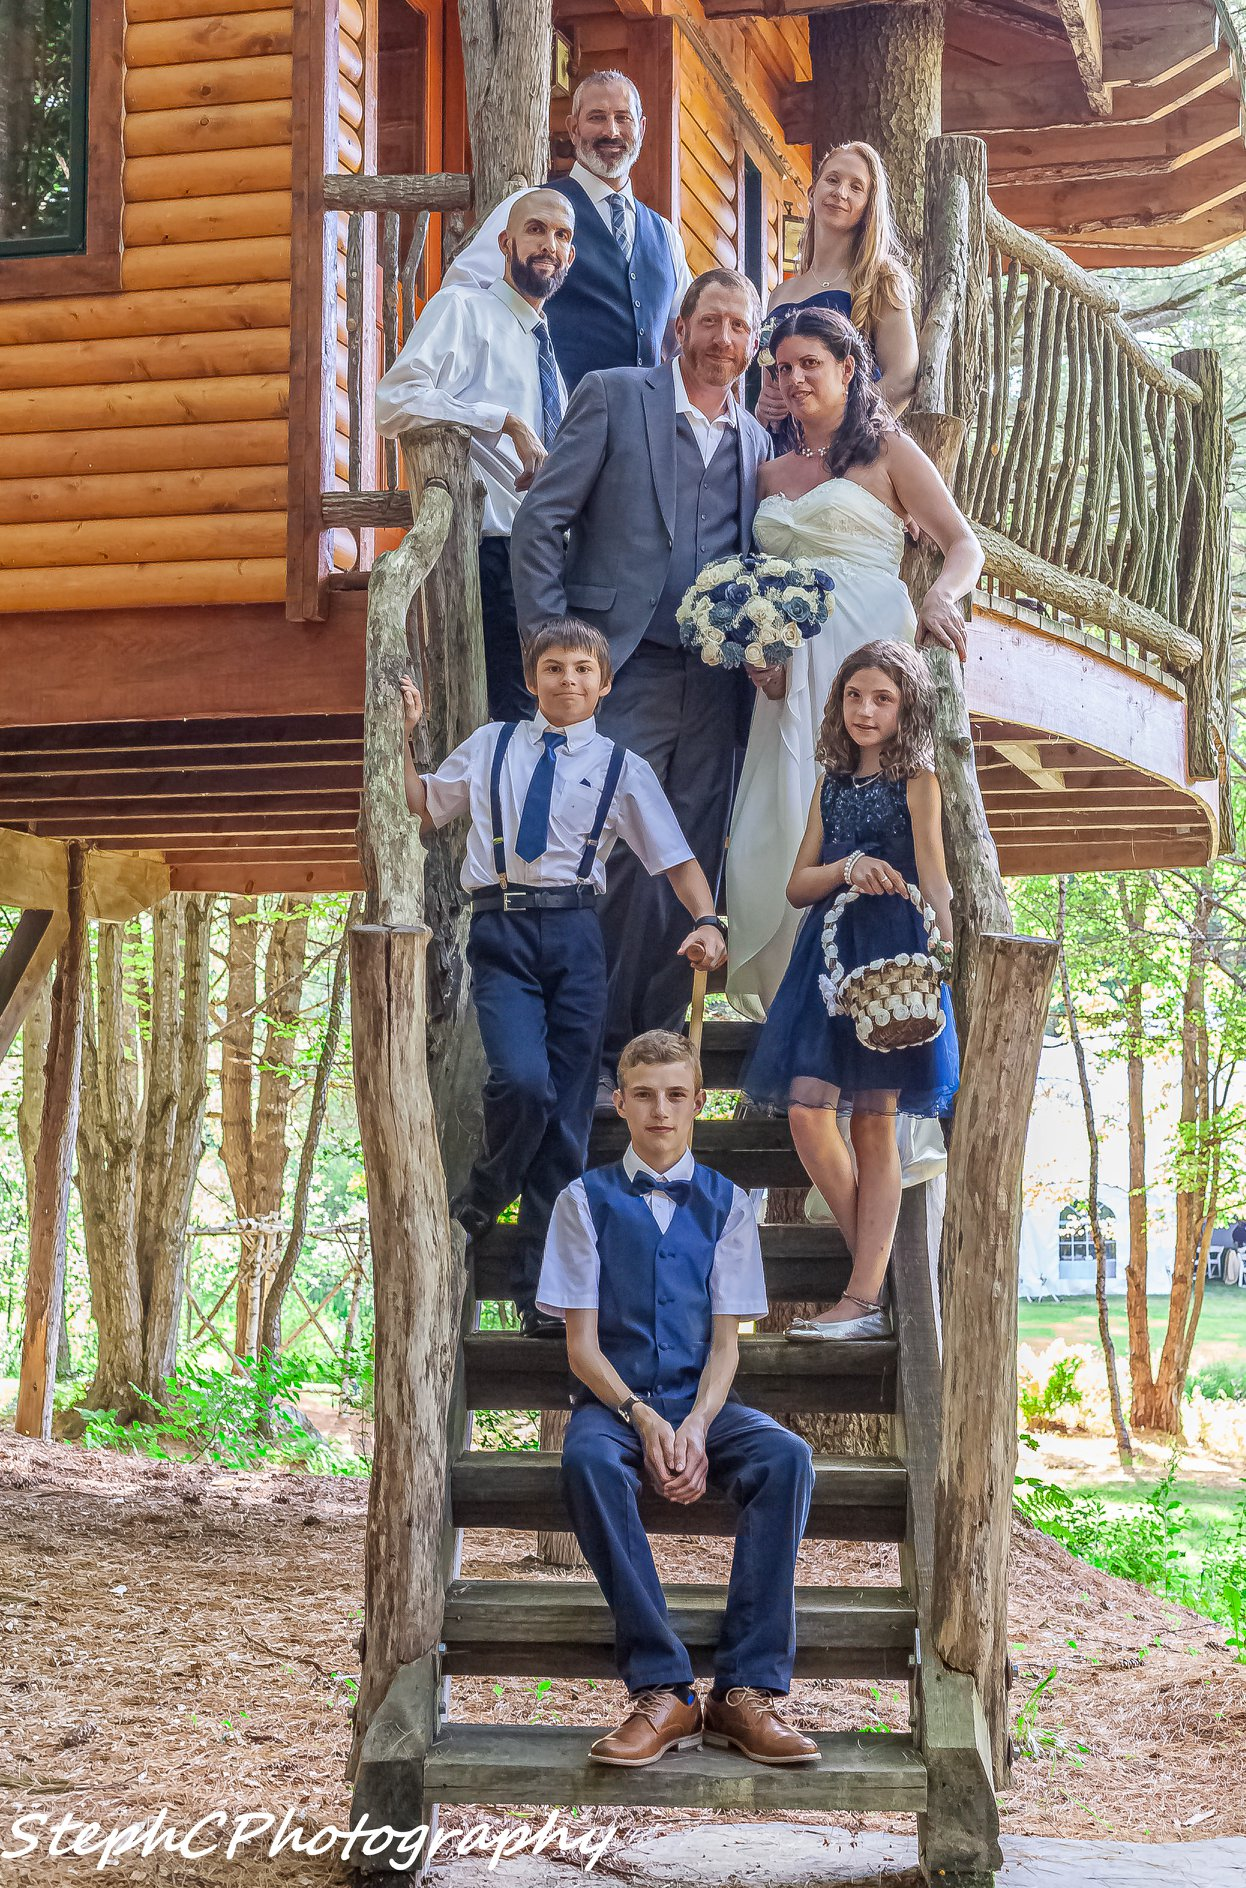 Greg Trulson, Justice of the Peace, Vermont Wedding Officiant, Elopements, Moose Meadow Lodge & Treehouse